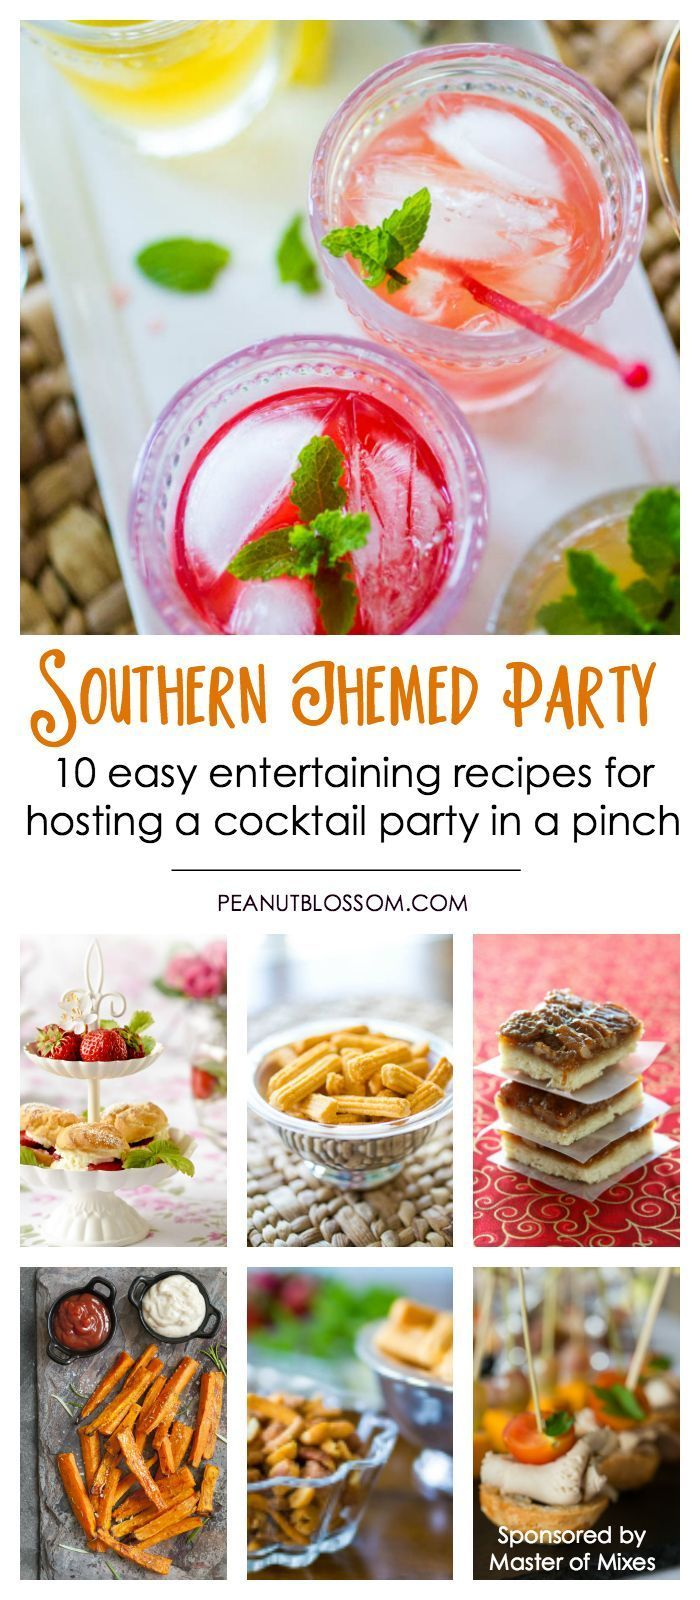 10 hostess hacks the easiest kentucky derby party ideas ever 10 hostess hacks the easiest kentucky derby party ideas ever forumfinder Gallery